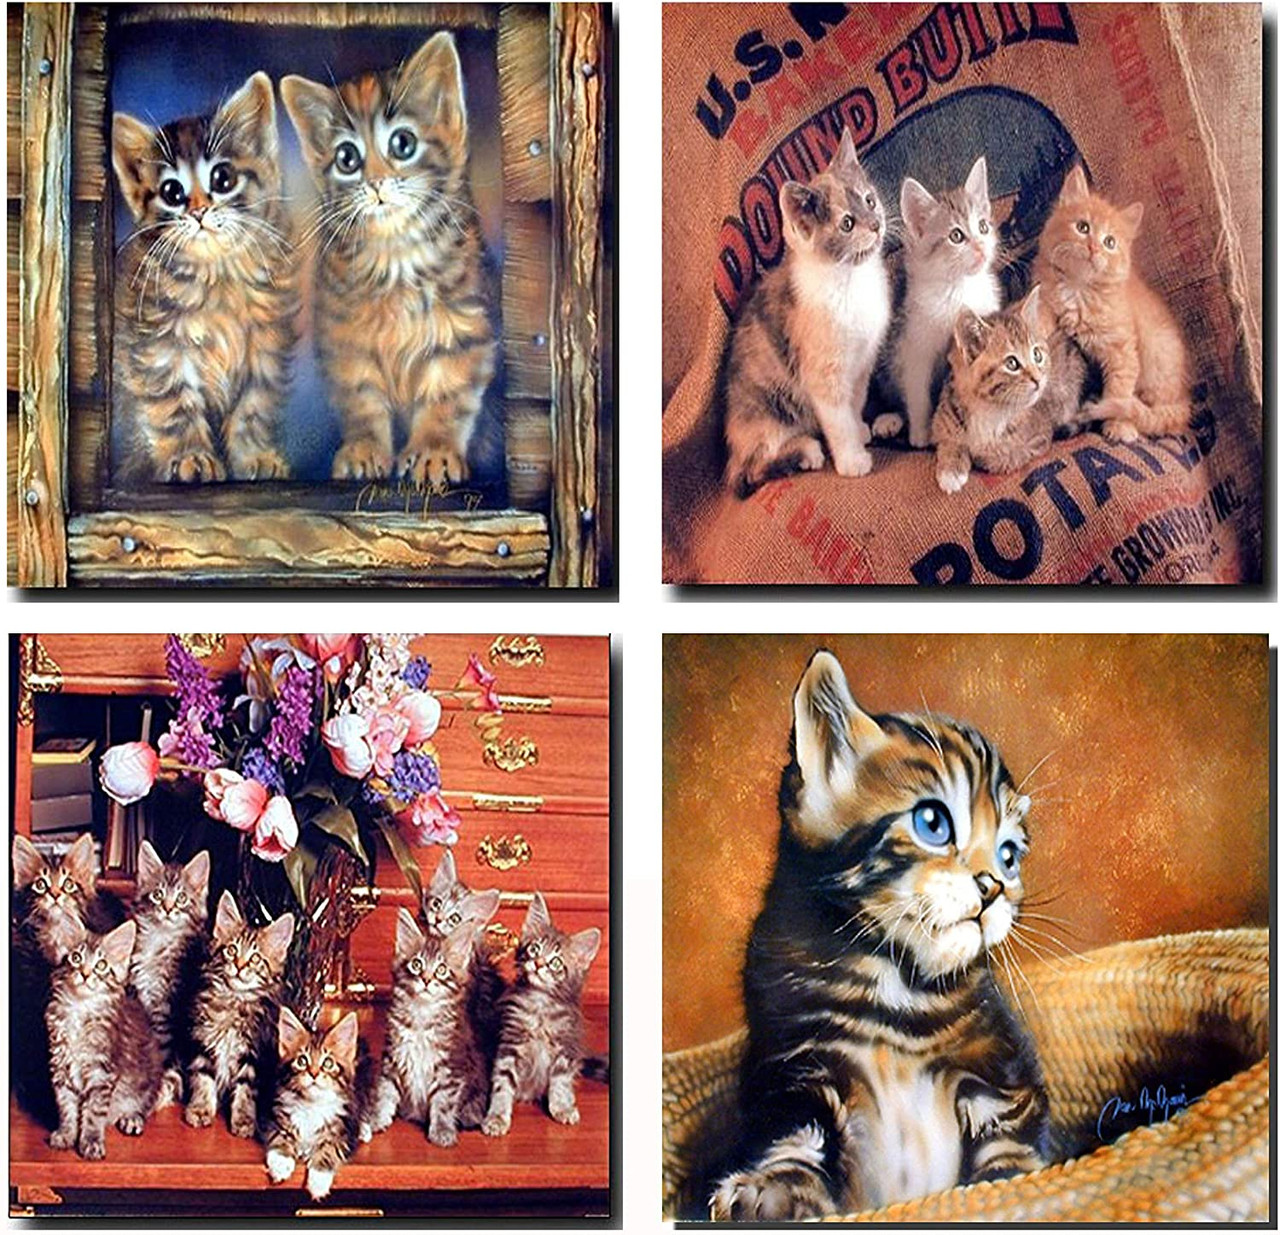 Cute Cats Wall Decor Kitten Animal Kids Room 16x20 Four Set Art Print Posters Impact Posters Gallery